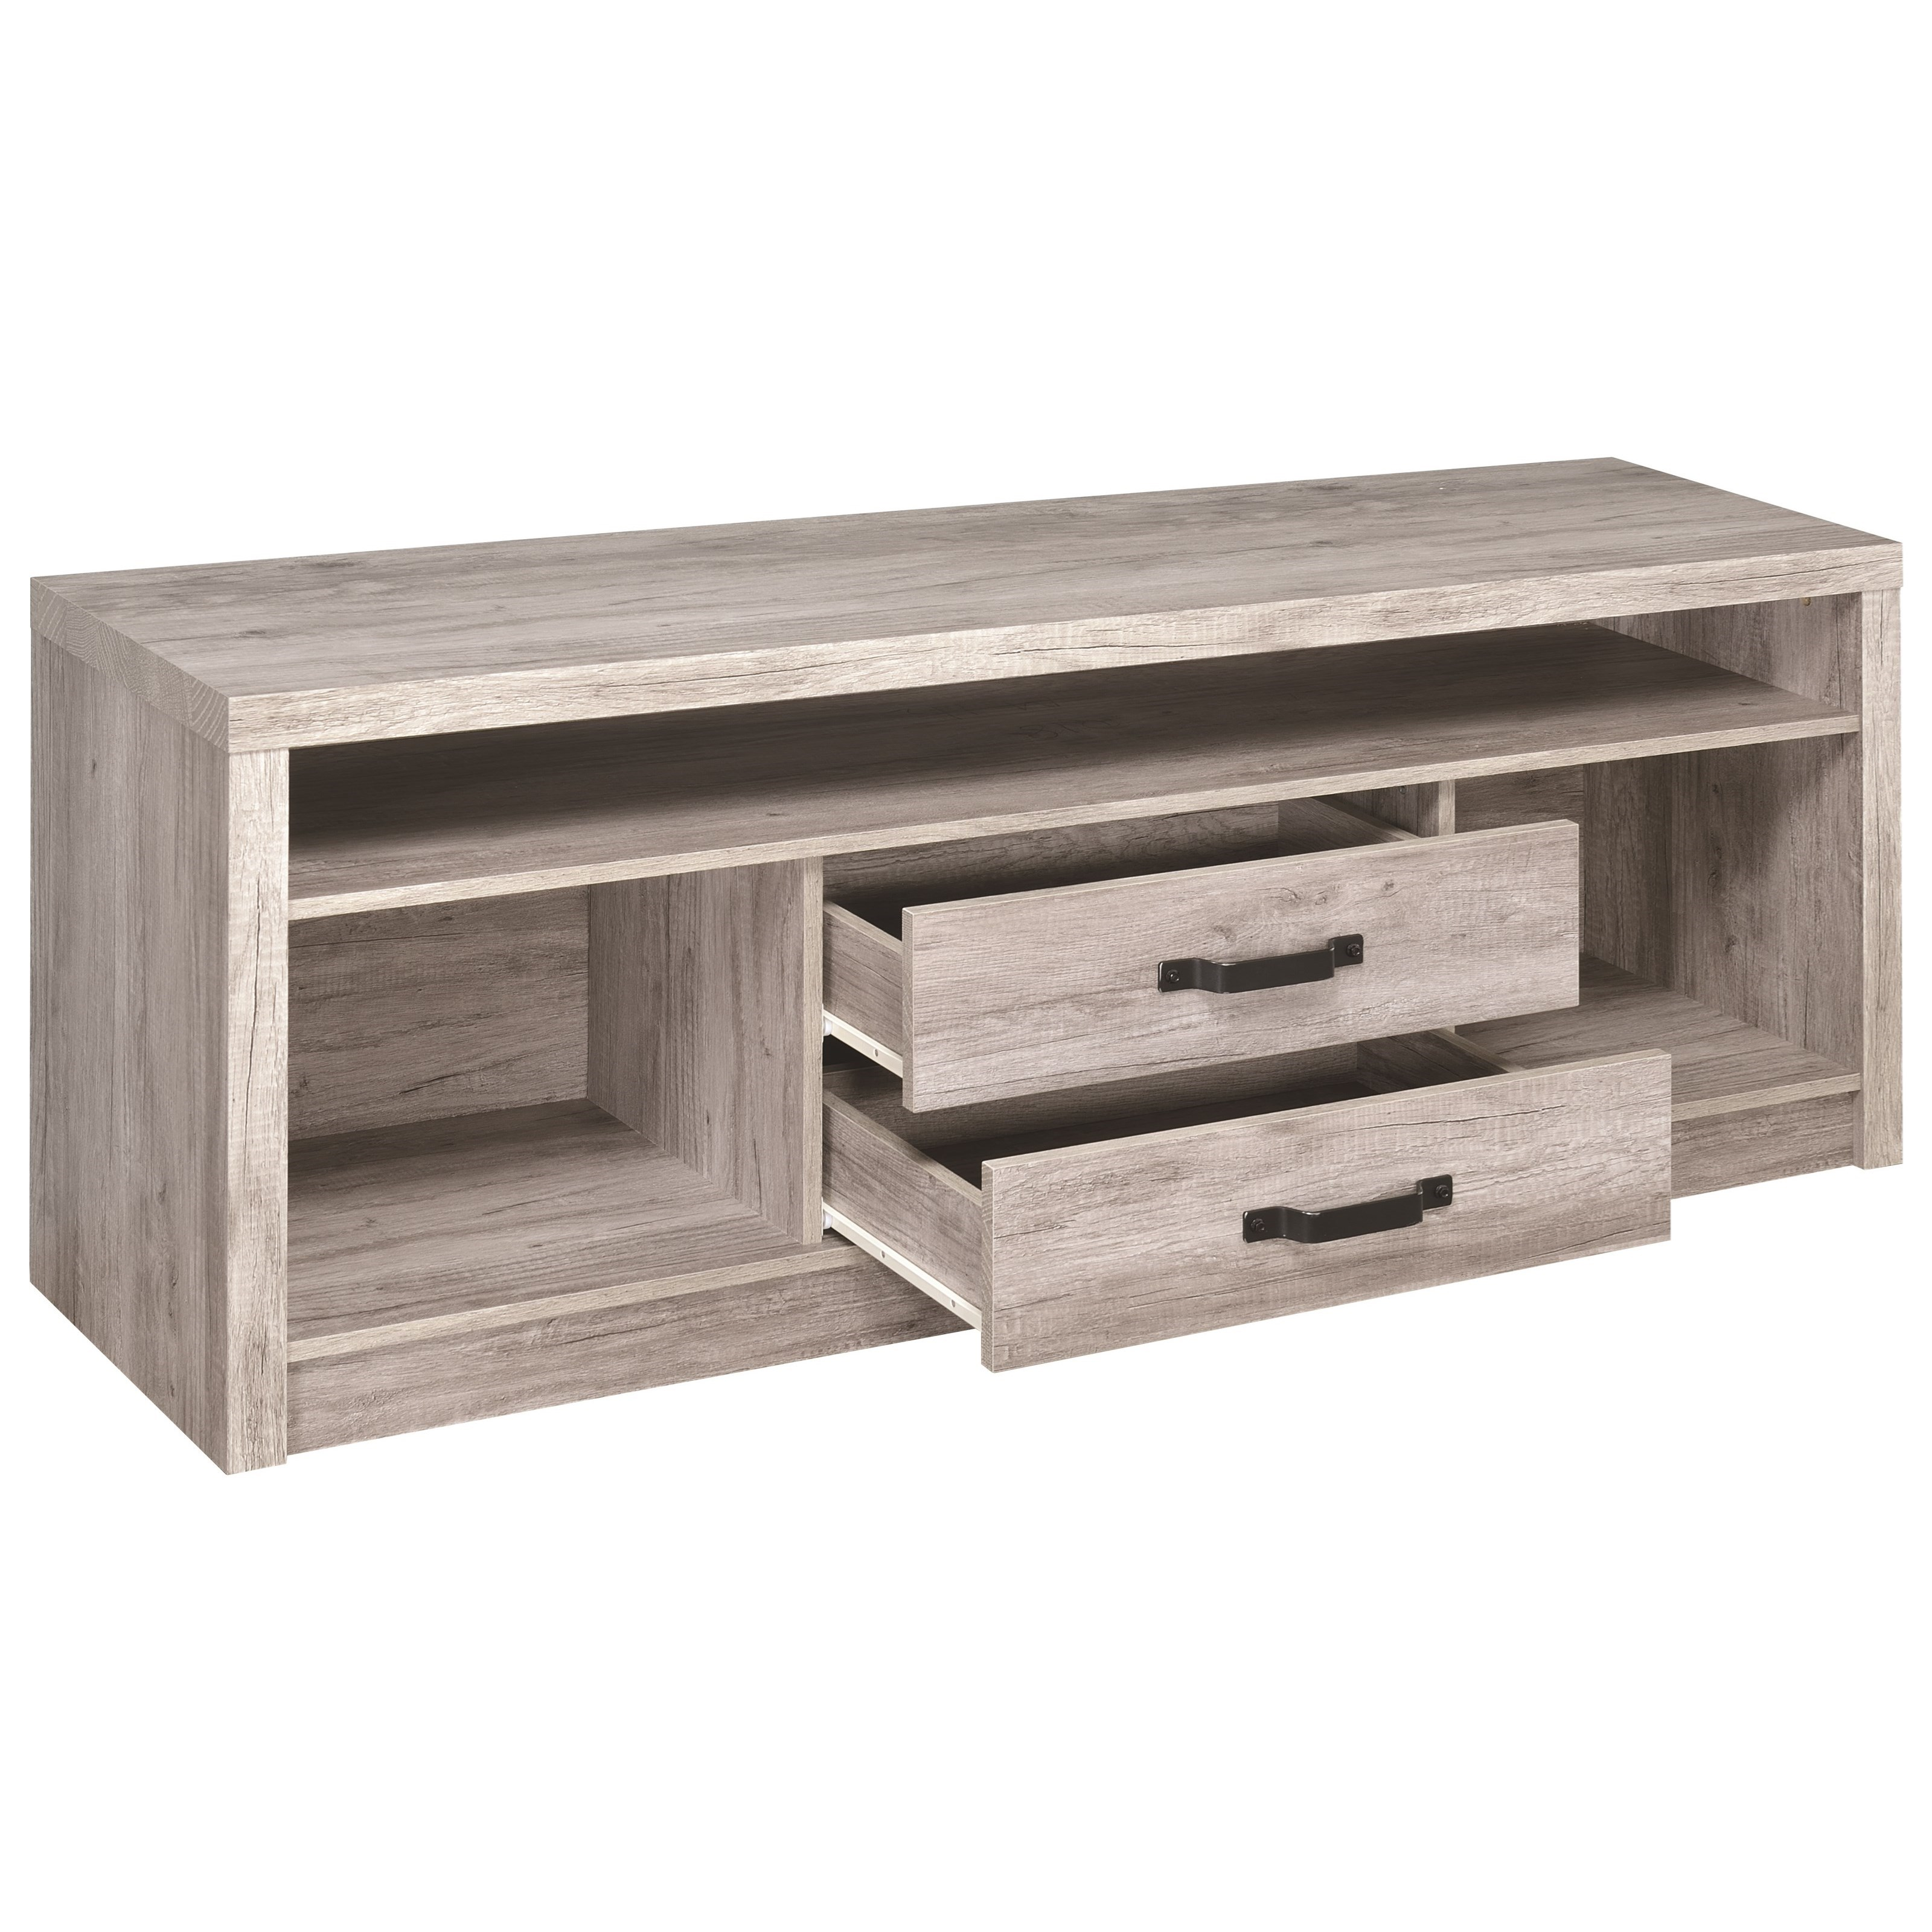 Tv Sideboard Modern Tv Stands Modern Tv Console With Grey Finish By Coaster At Dunk Bright Furniture